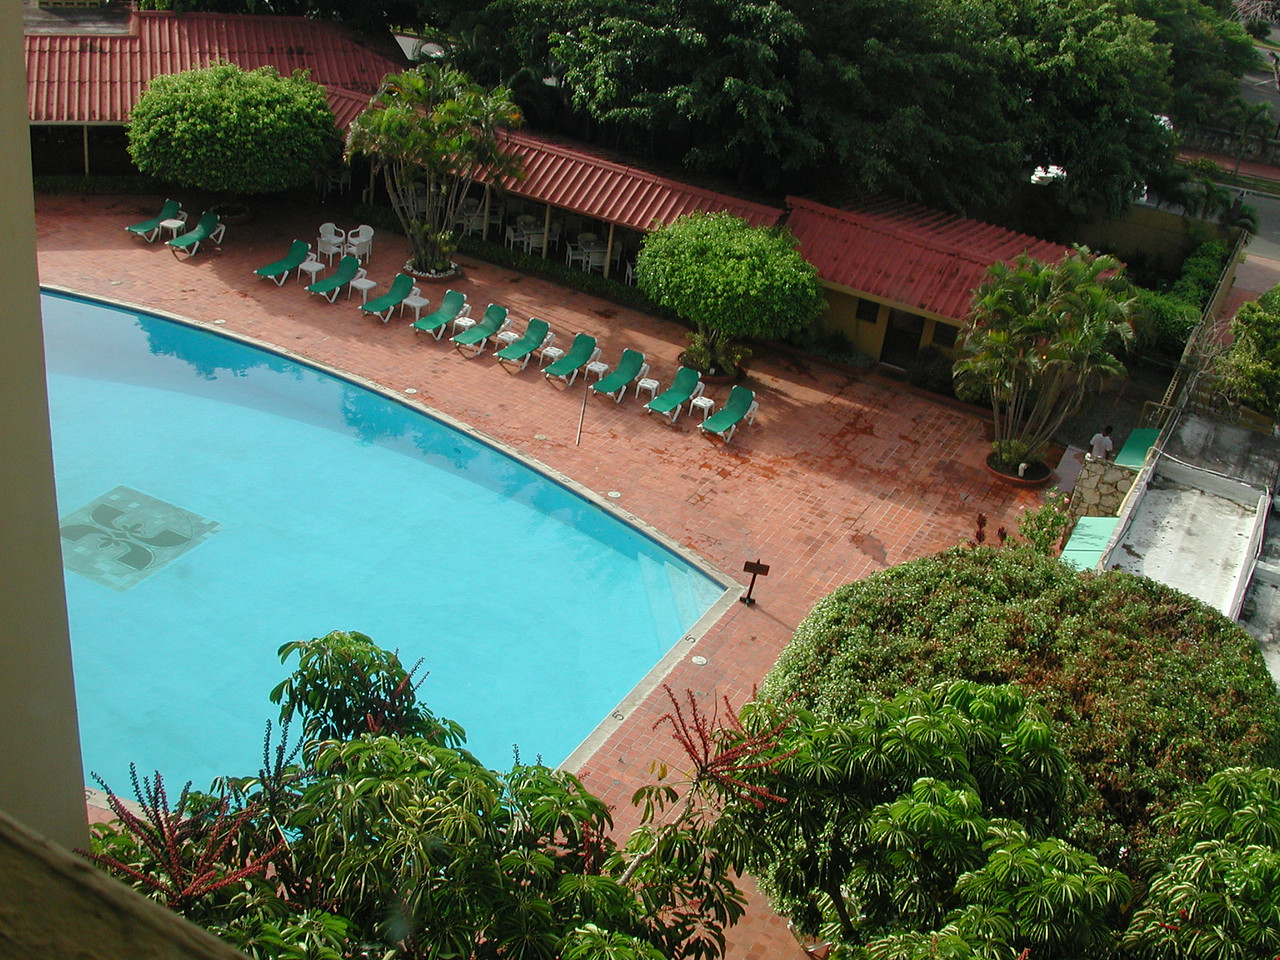 Here is a picture of the hotel pool from the 4th floor lobby.